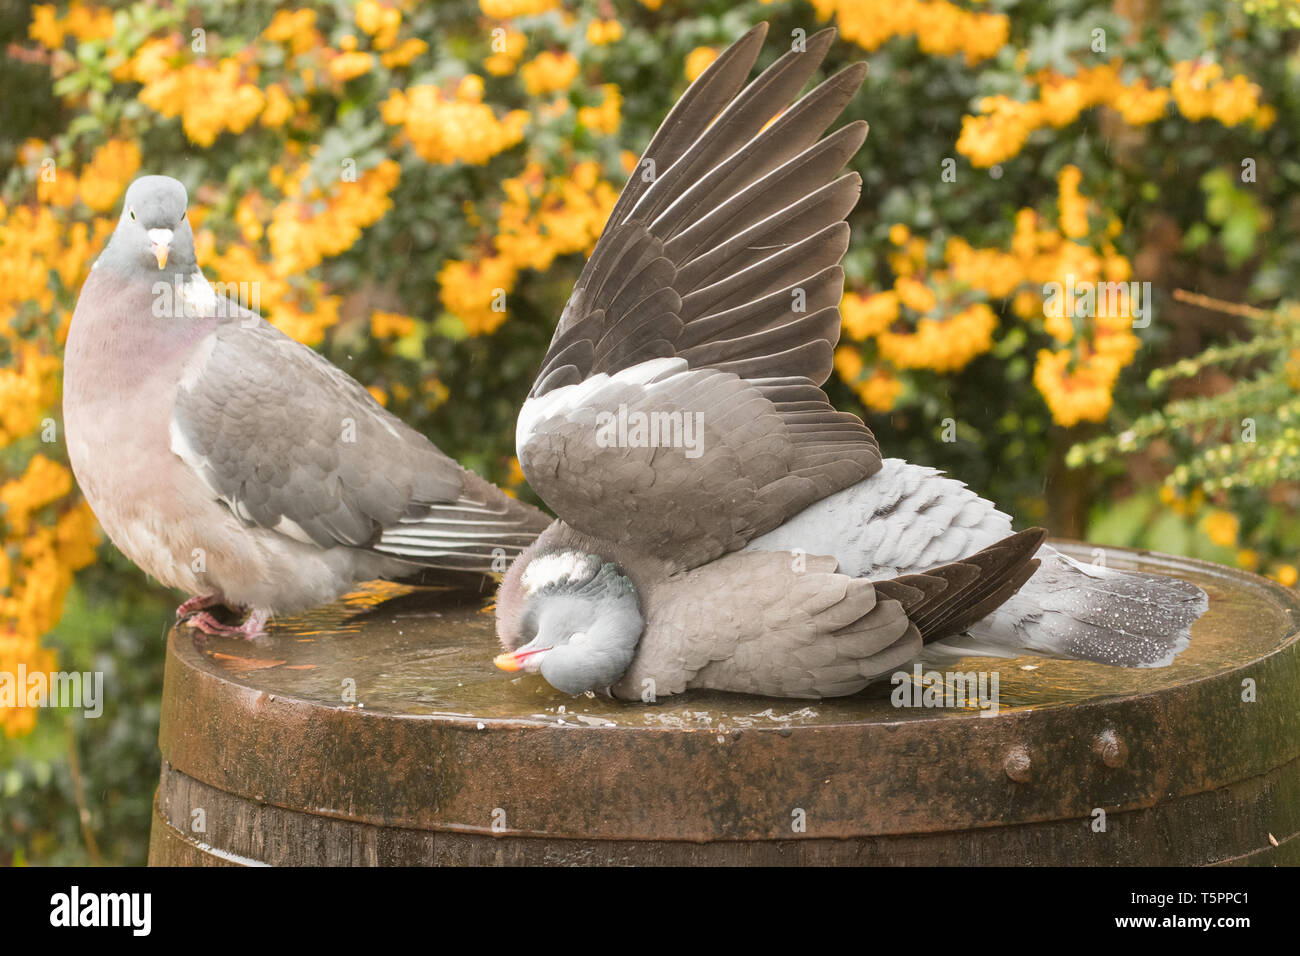 Stirlingshire, Scotland, UK. 26th Apr, 2019. UK weather - wood pigeons taking a shower on a showery day in Stirlingshire, holding wings upright one at a time allowing the rain to clean their feathers Credit: Kay Roxby/Alamy Live News Stock Photo